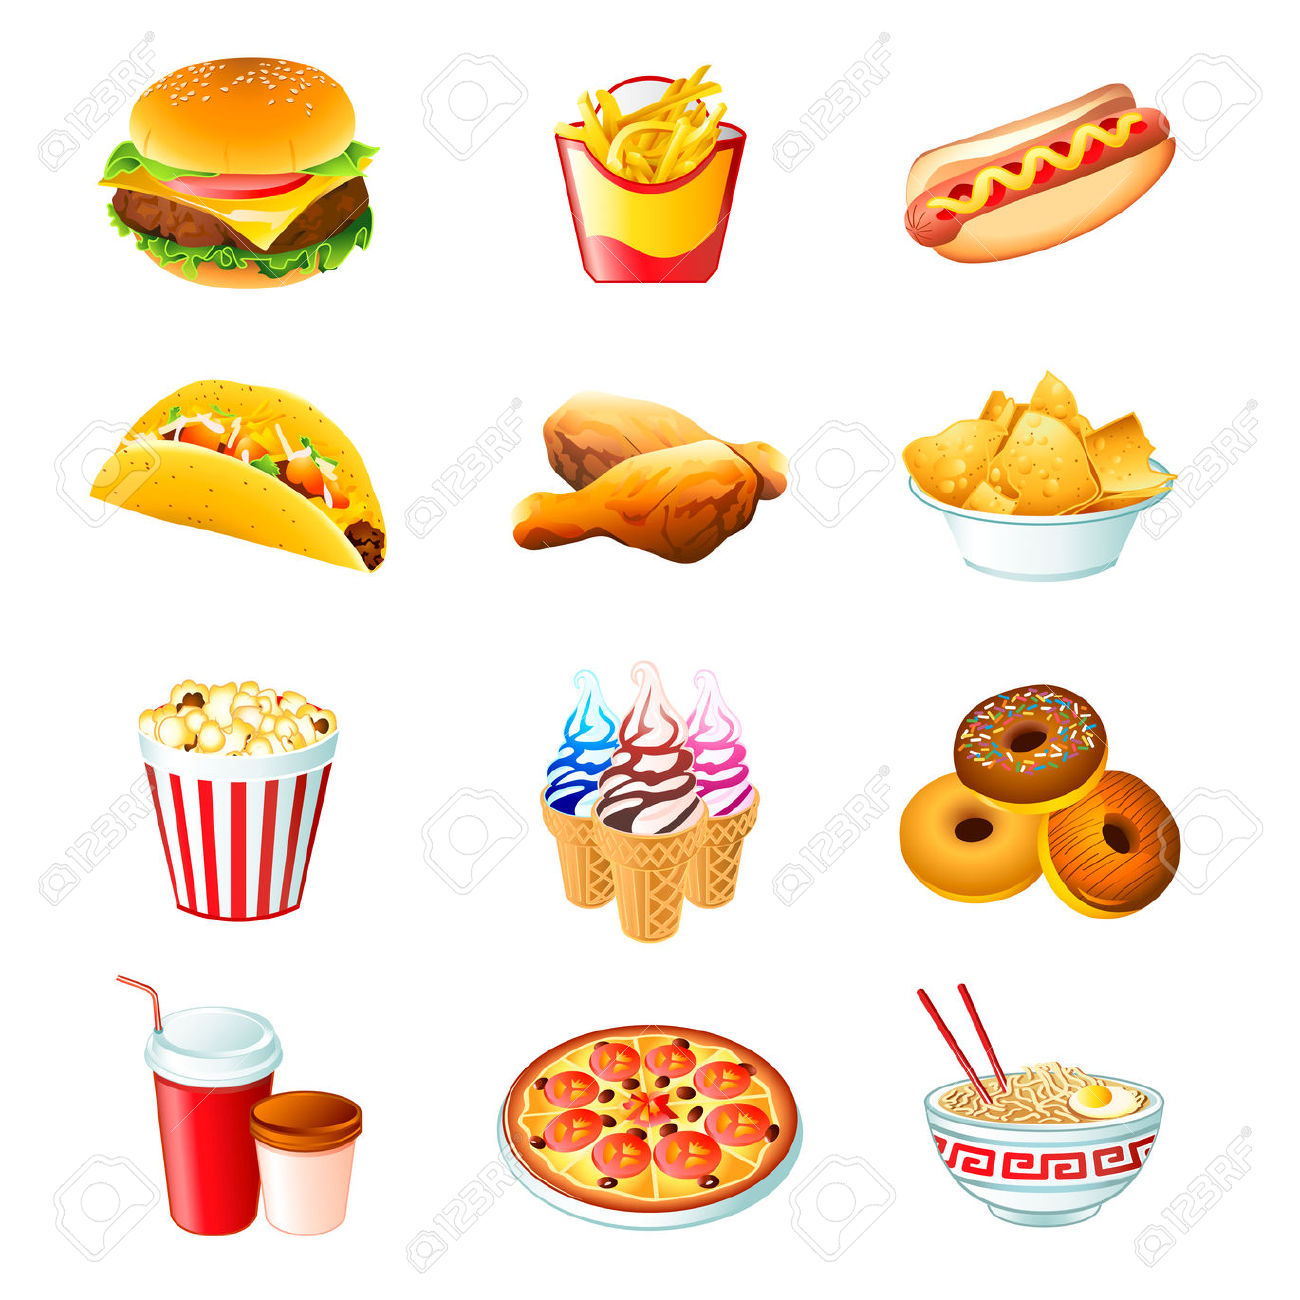 junk and fast food Because fast food and junk food don't contain adequate amounts of protein and  good carbohydrates, your blood sugar levels will drop suddenly after eating,.